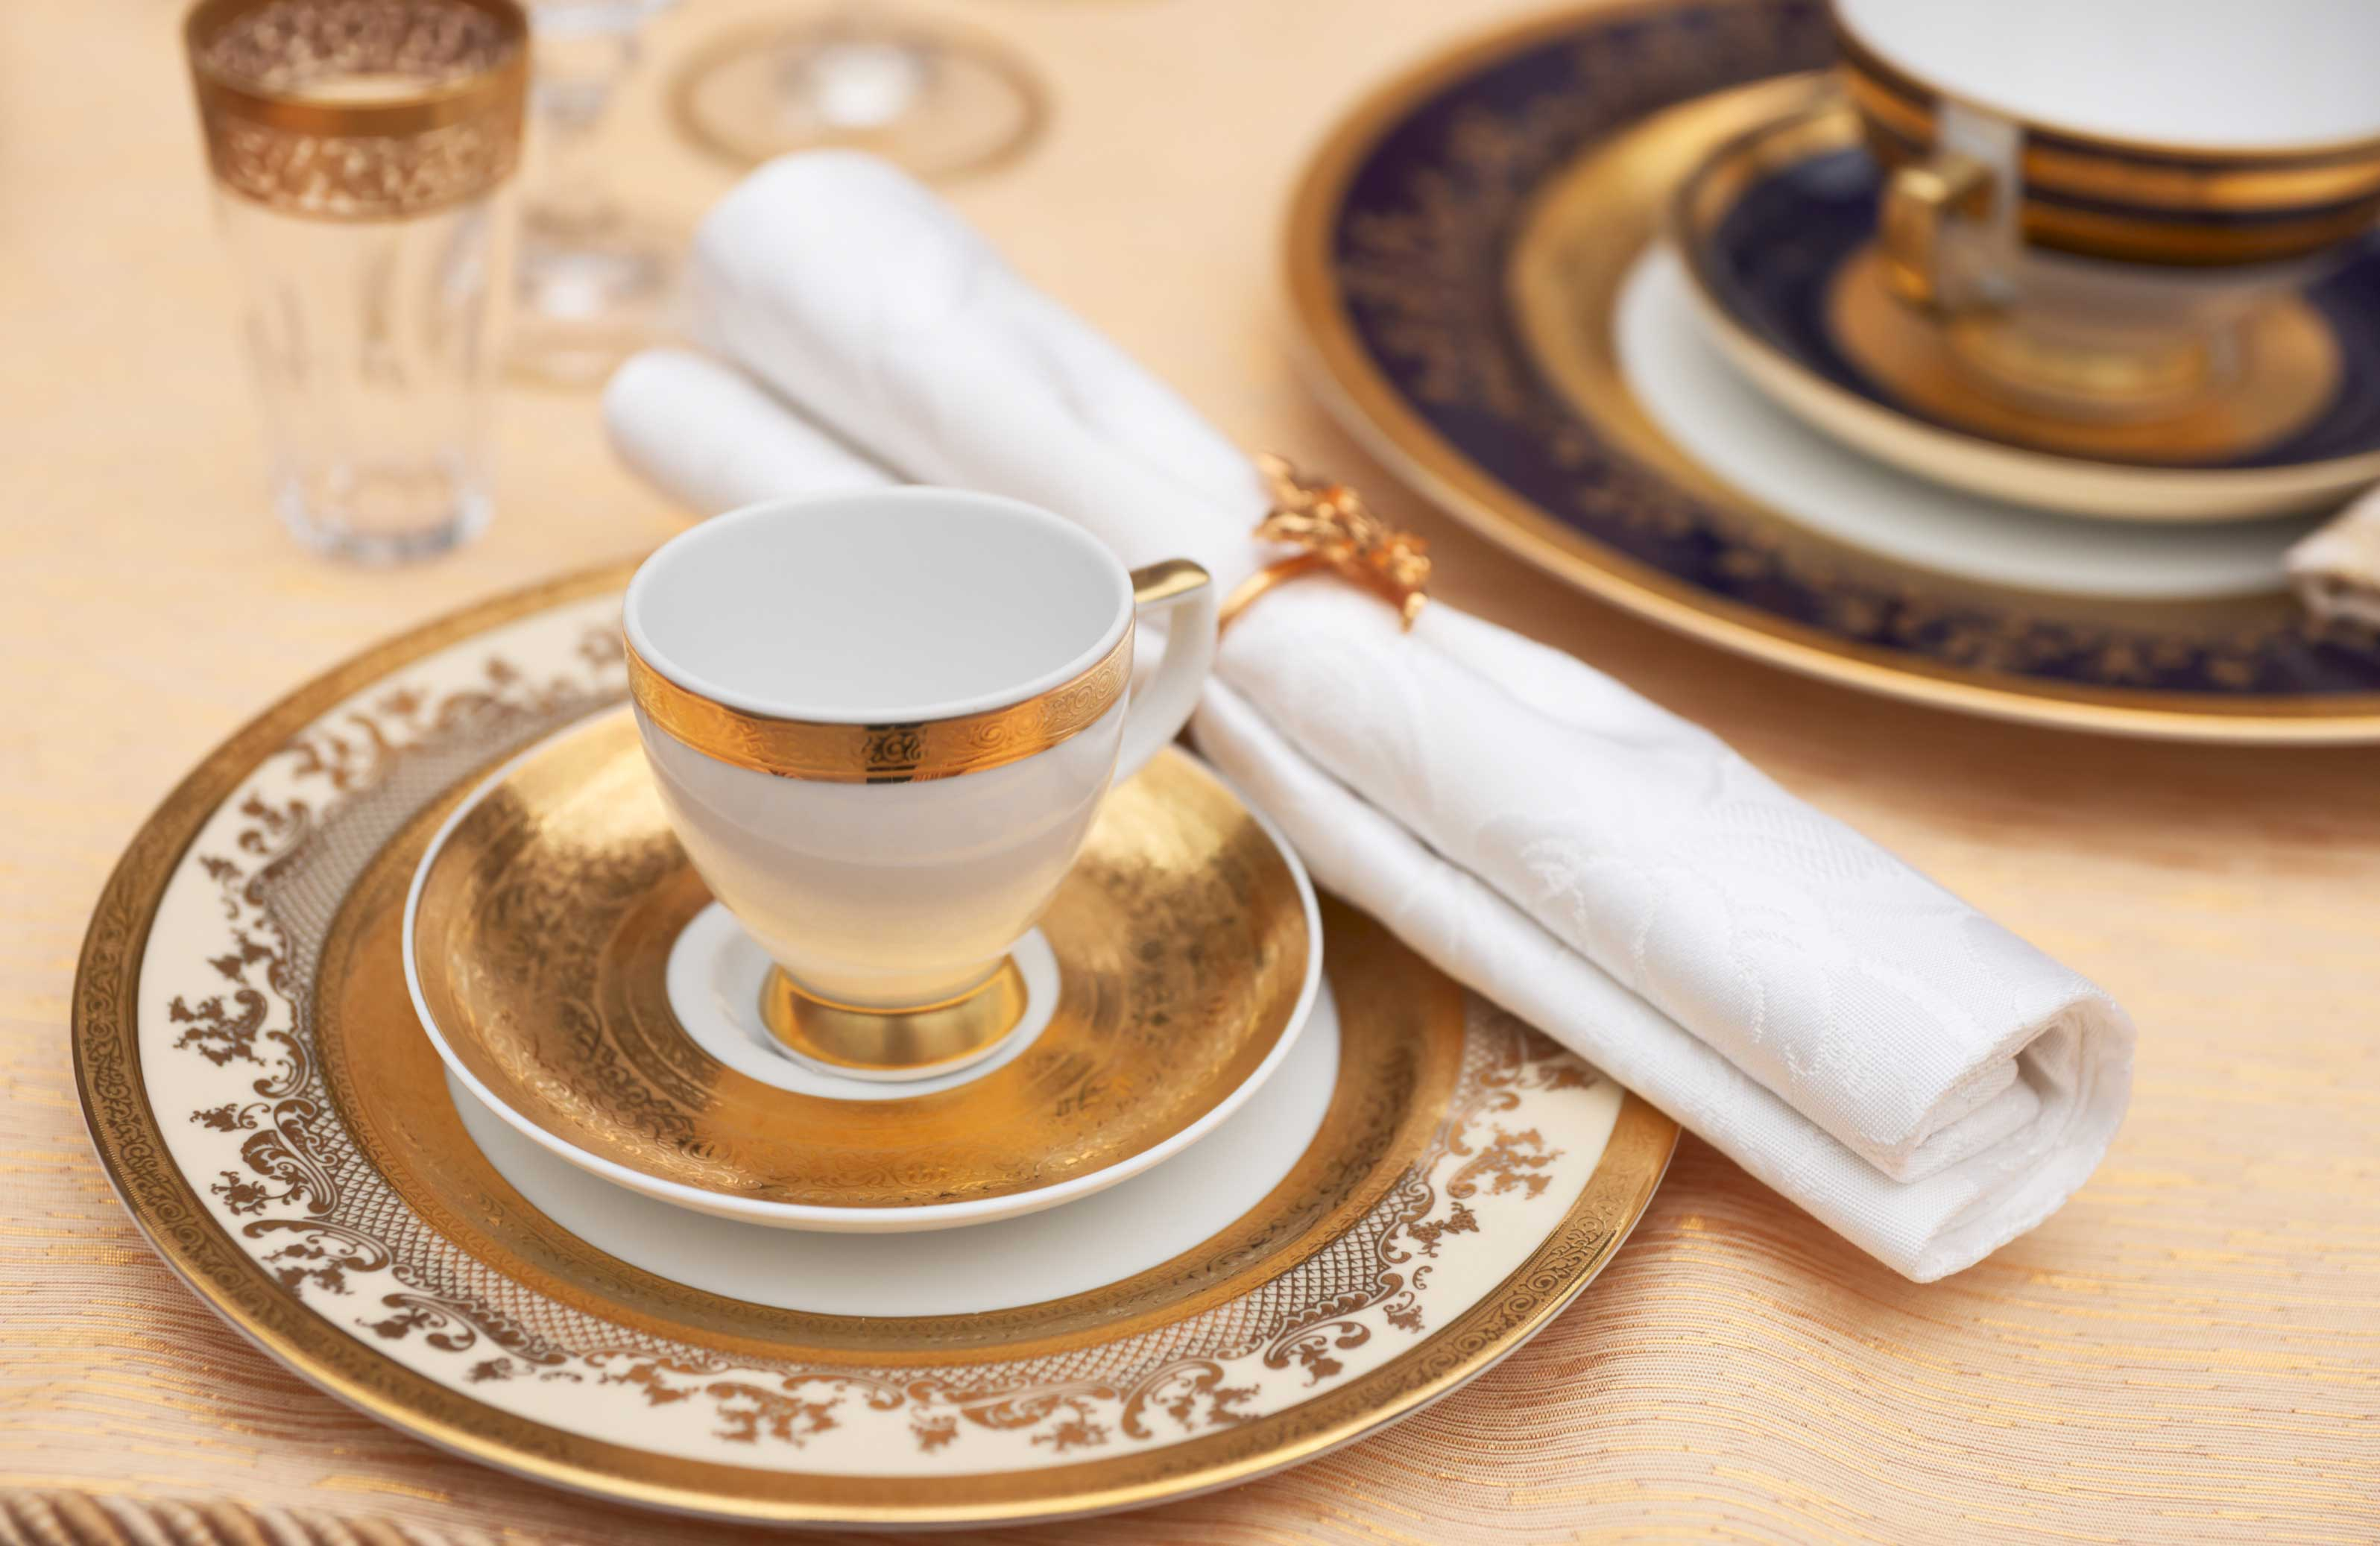 Gold plated dishes or utensils